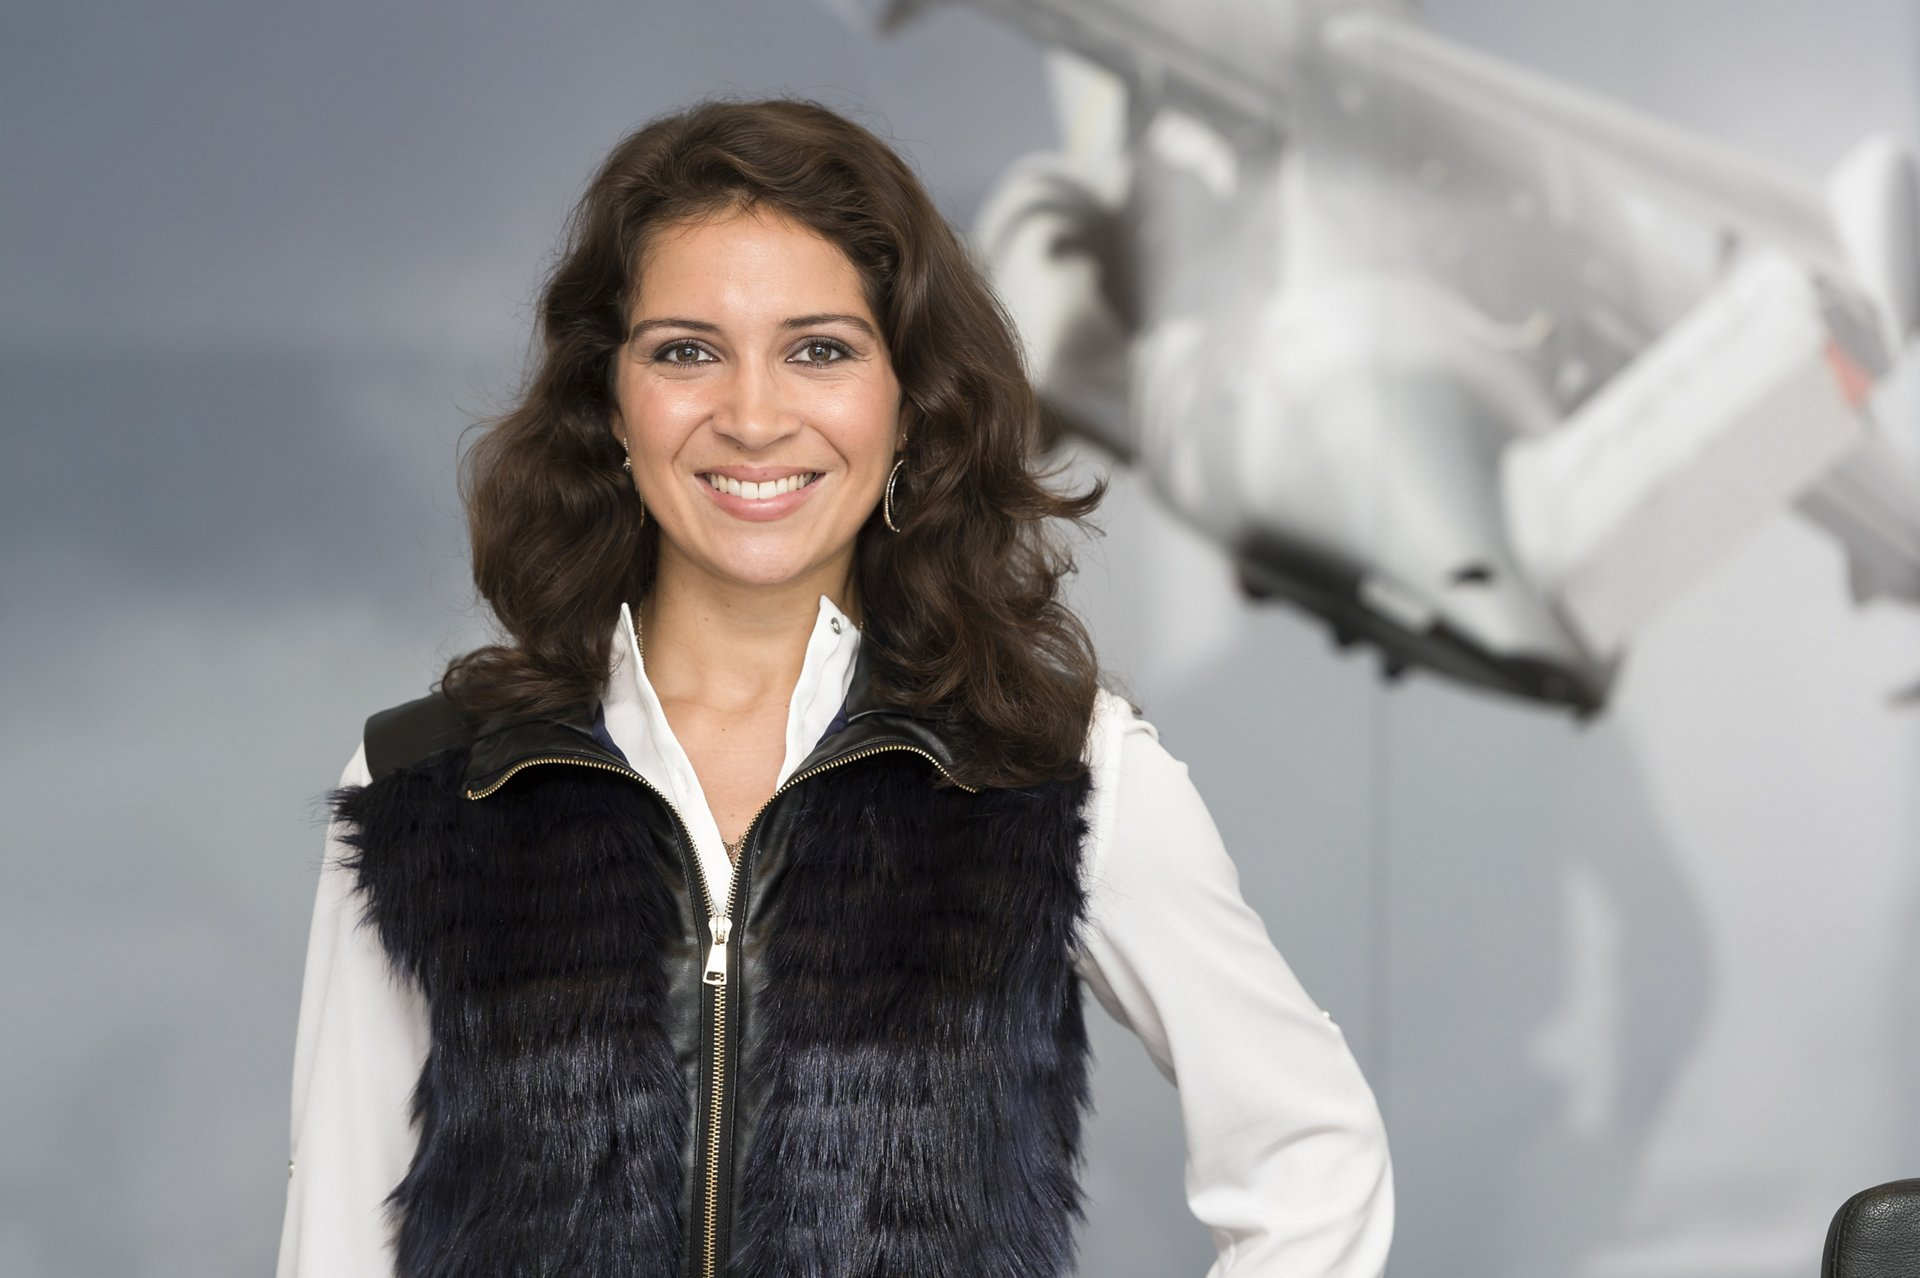 Das ist Sally-Anne, Personal Assistant